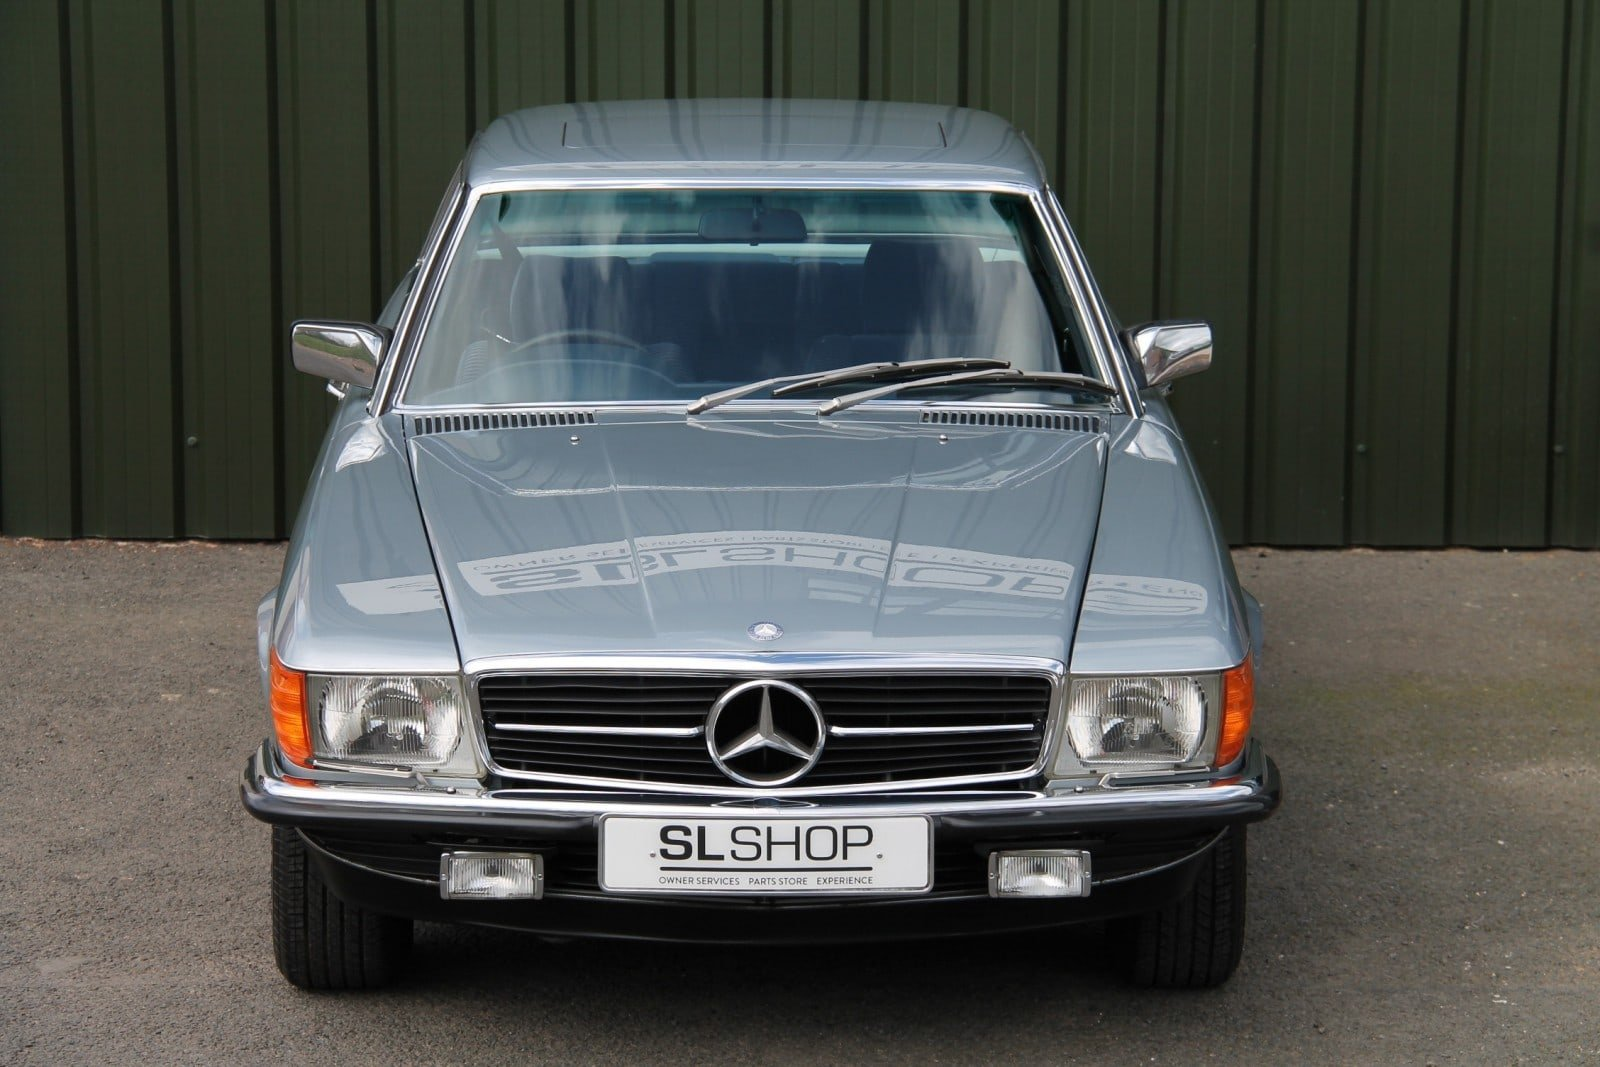 1981 Mercedes-Benz 380 SLC Stock No 2118 For Sale (picture 2 of 6)